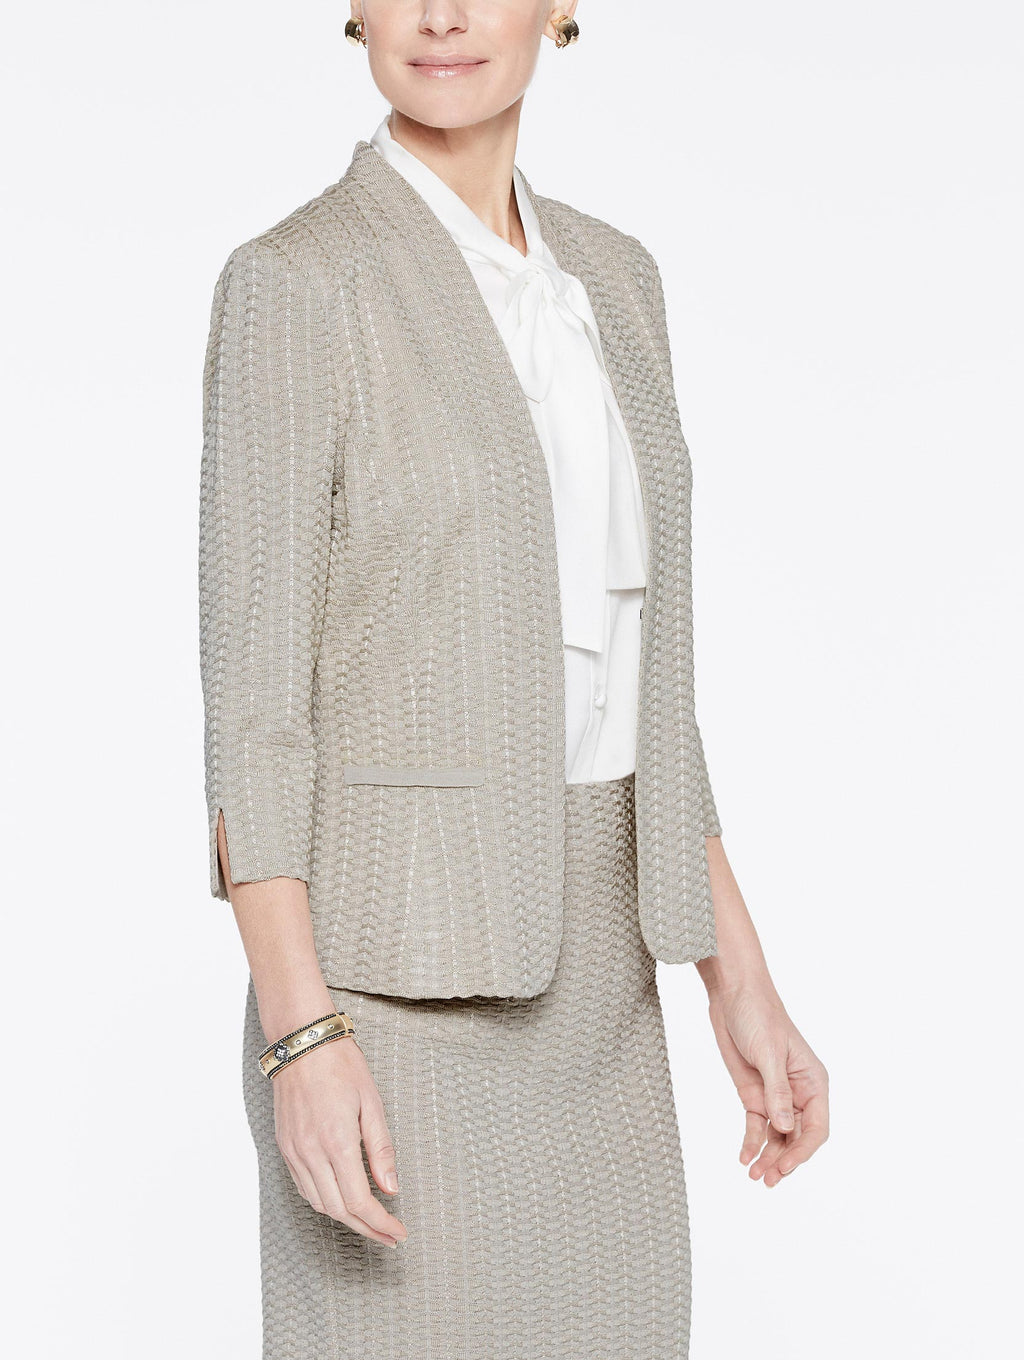 Beige Basketweave Textured Jacket